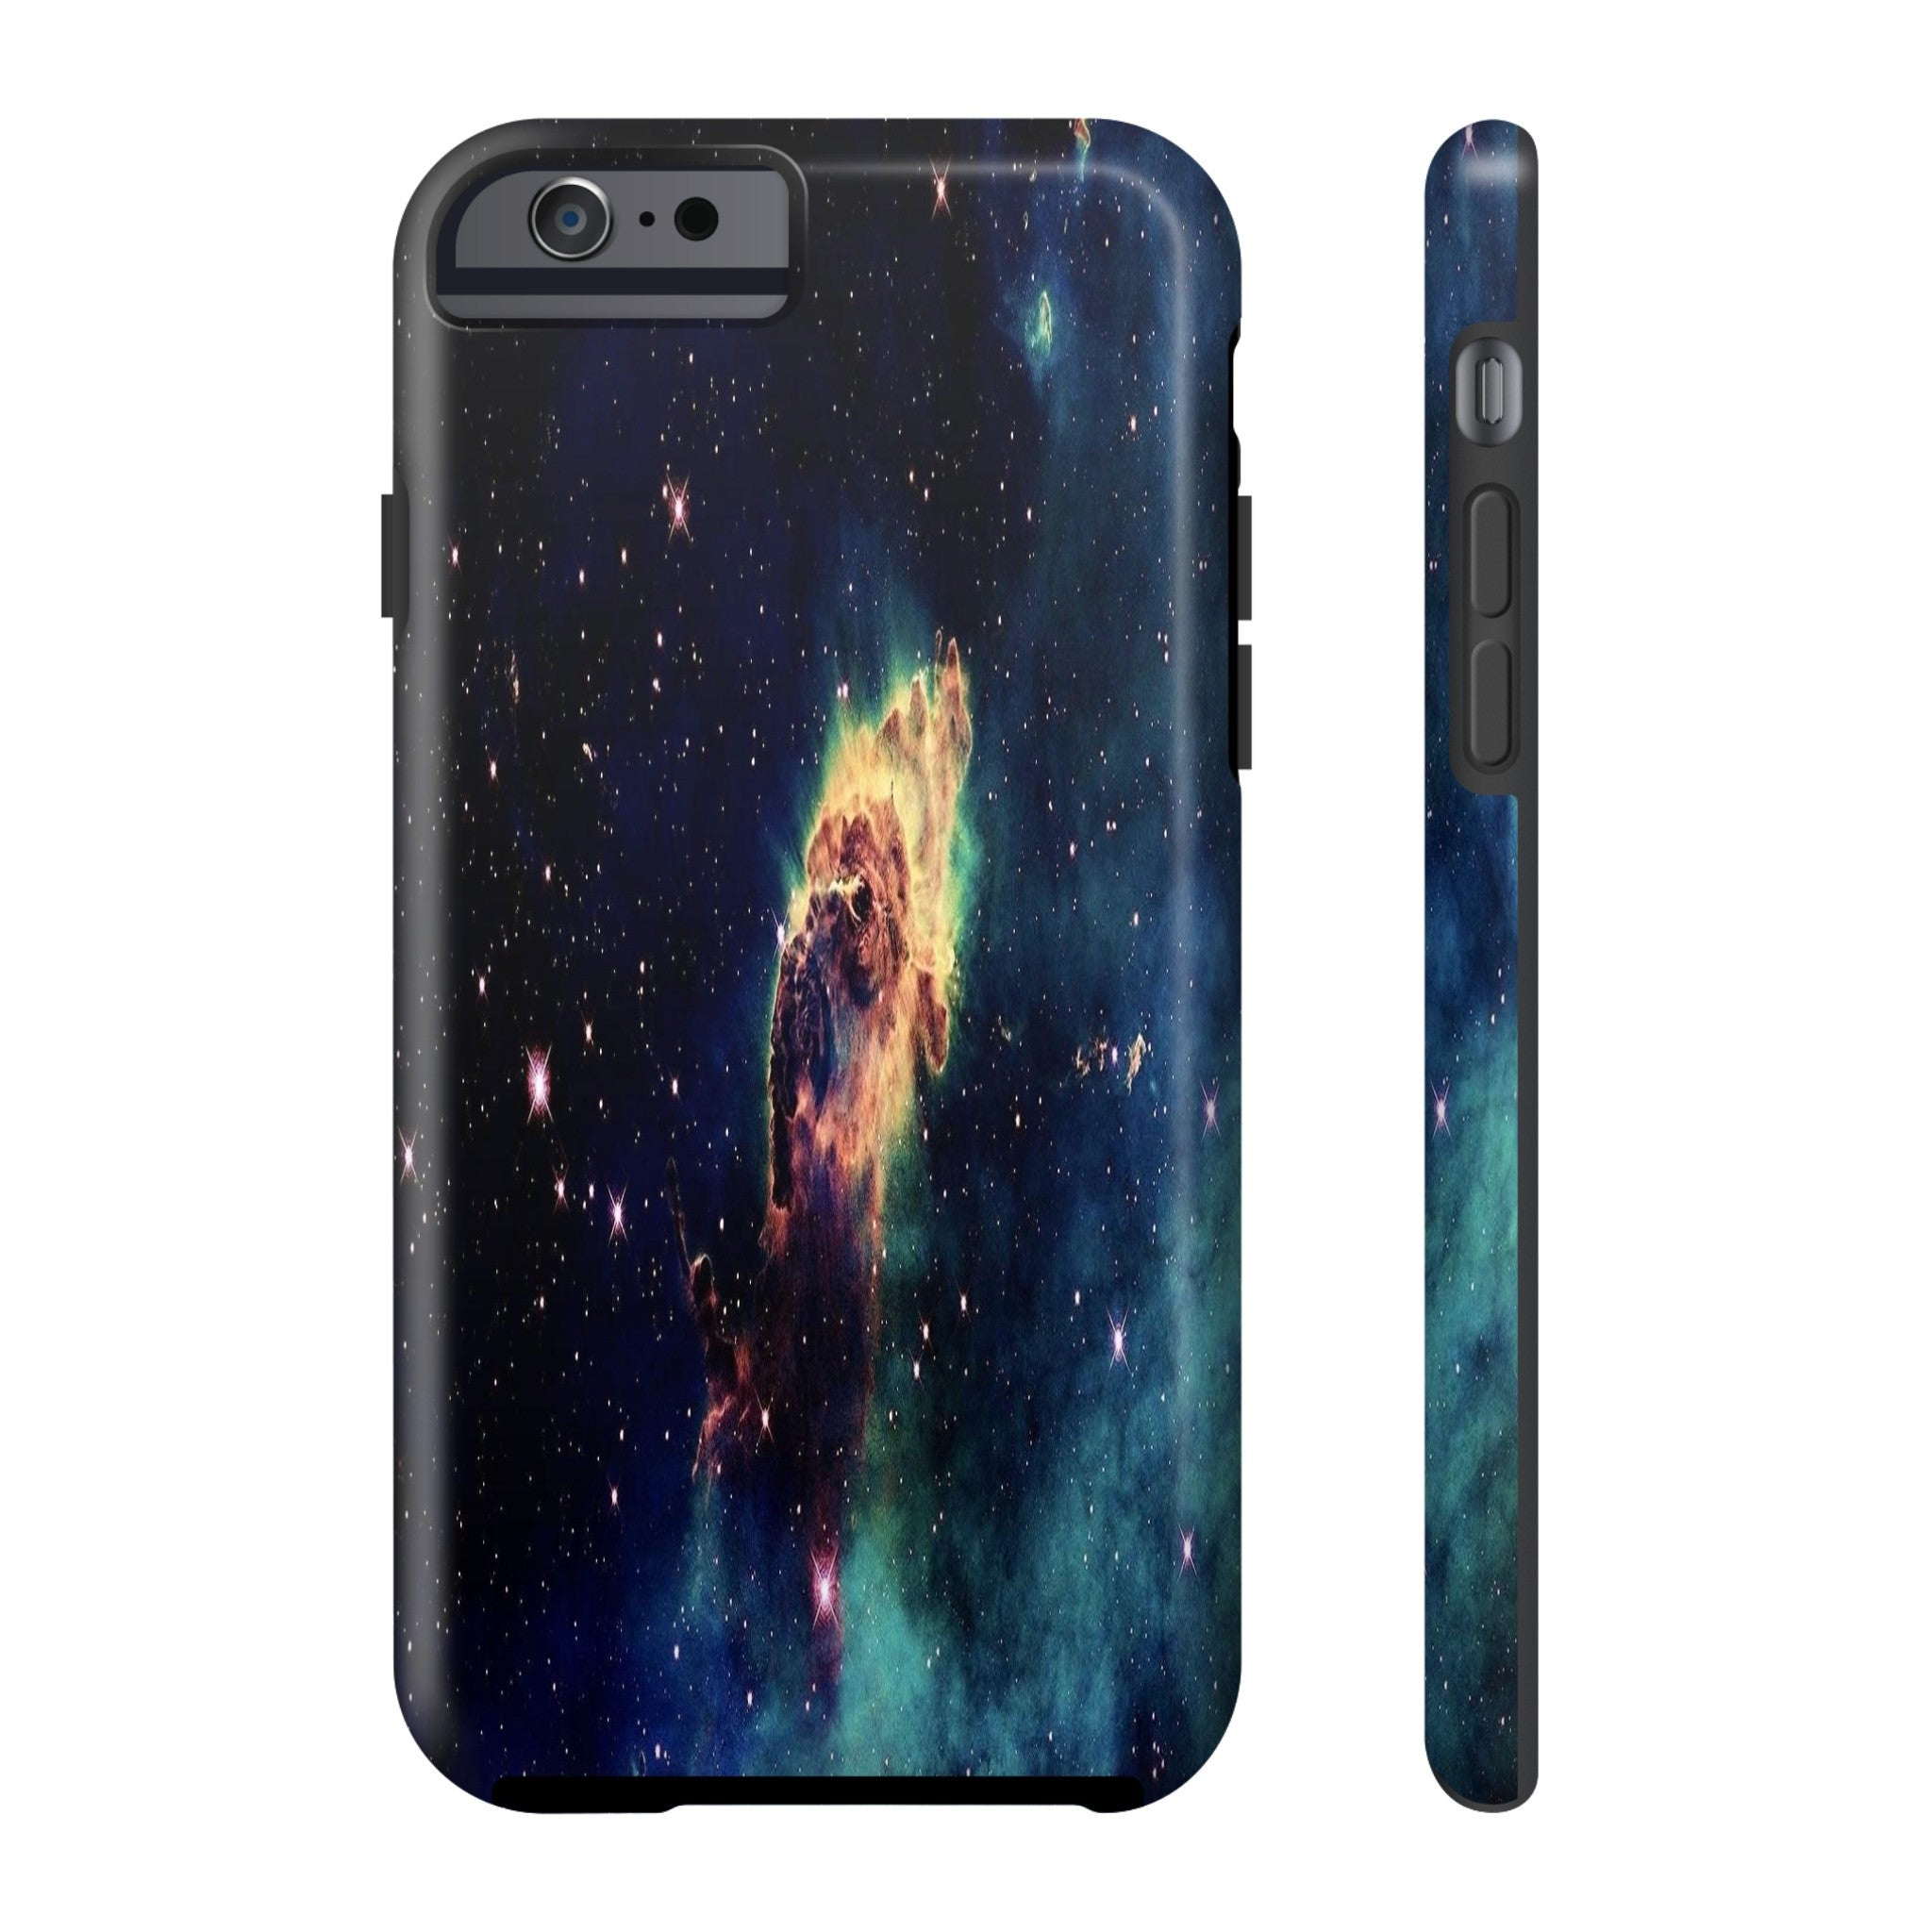 Outer Space Tough Iphone 6/6s